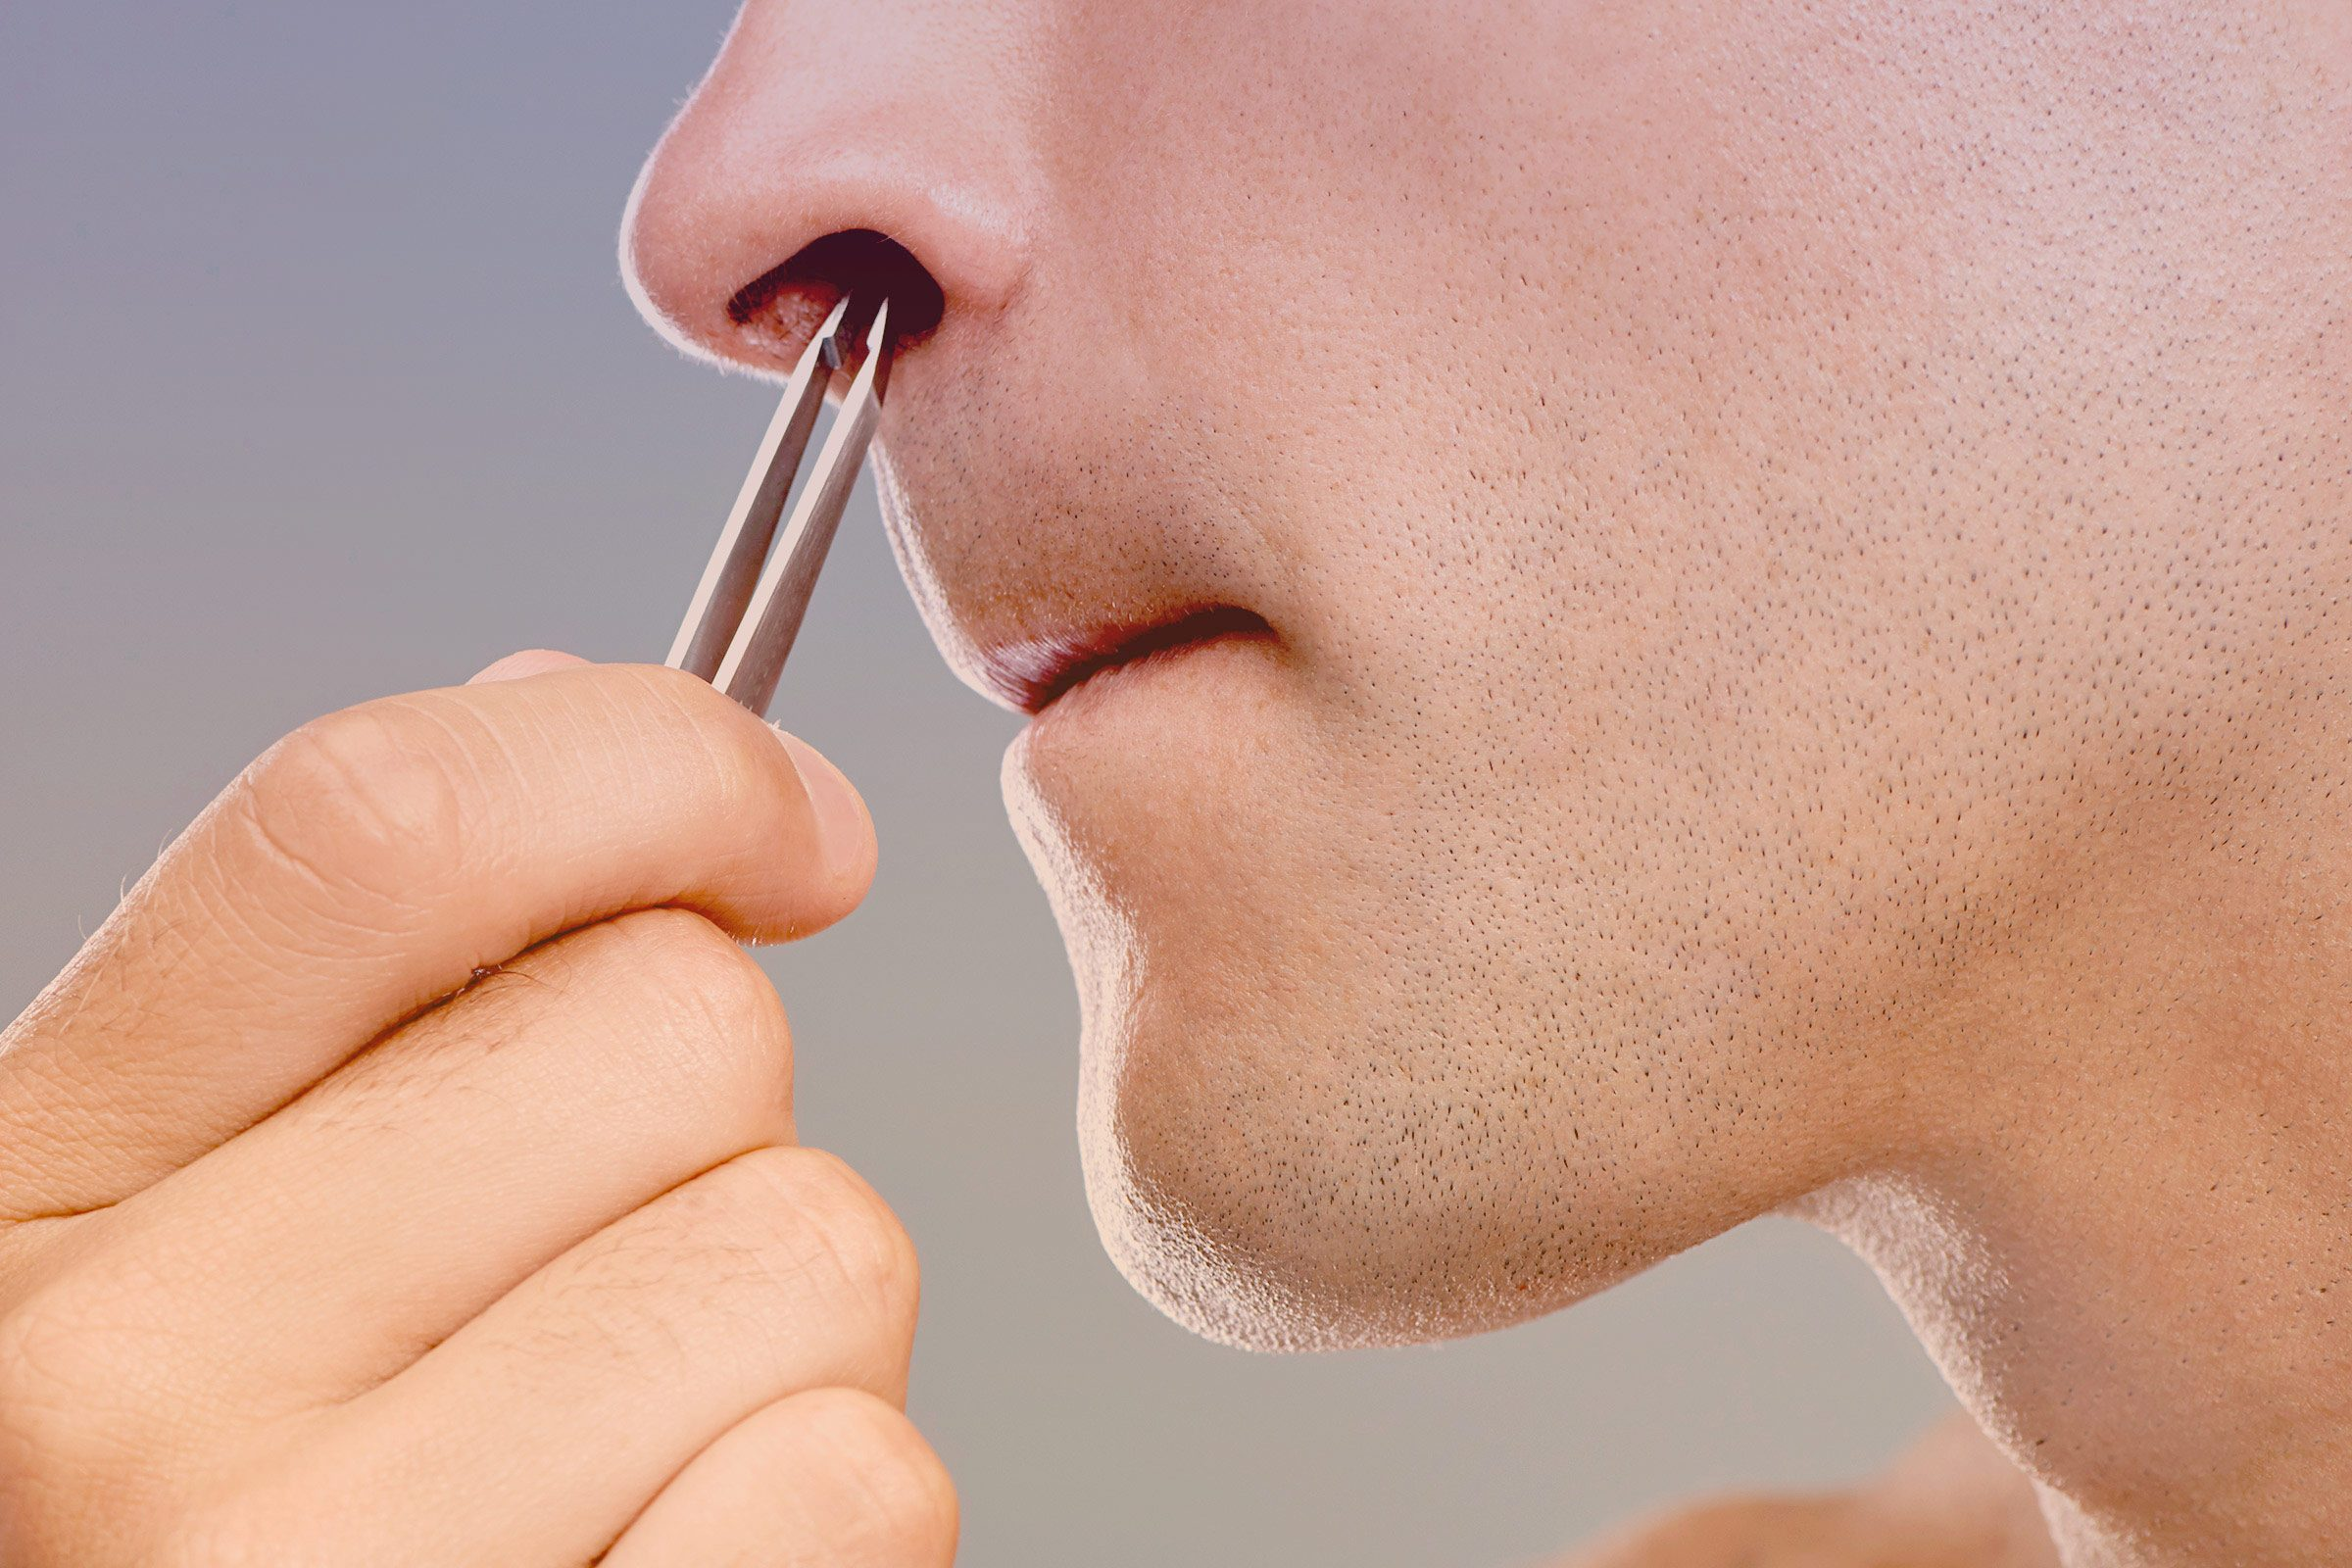 Plucking your nose hair: harmful.